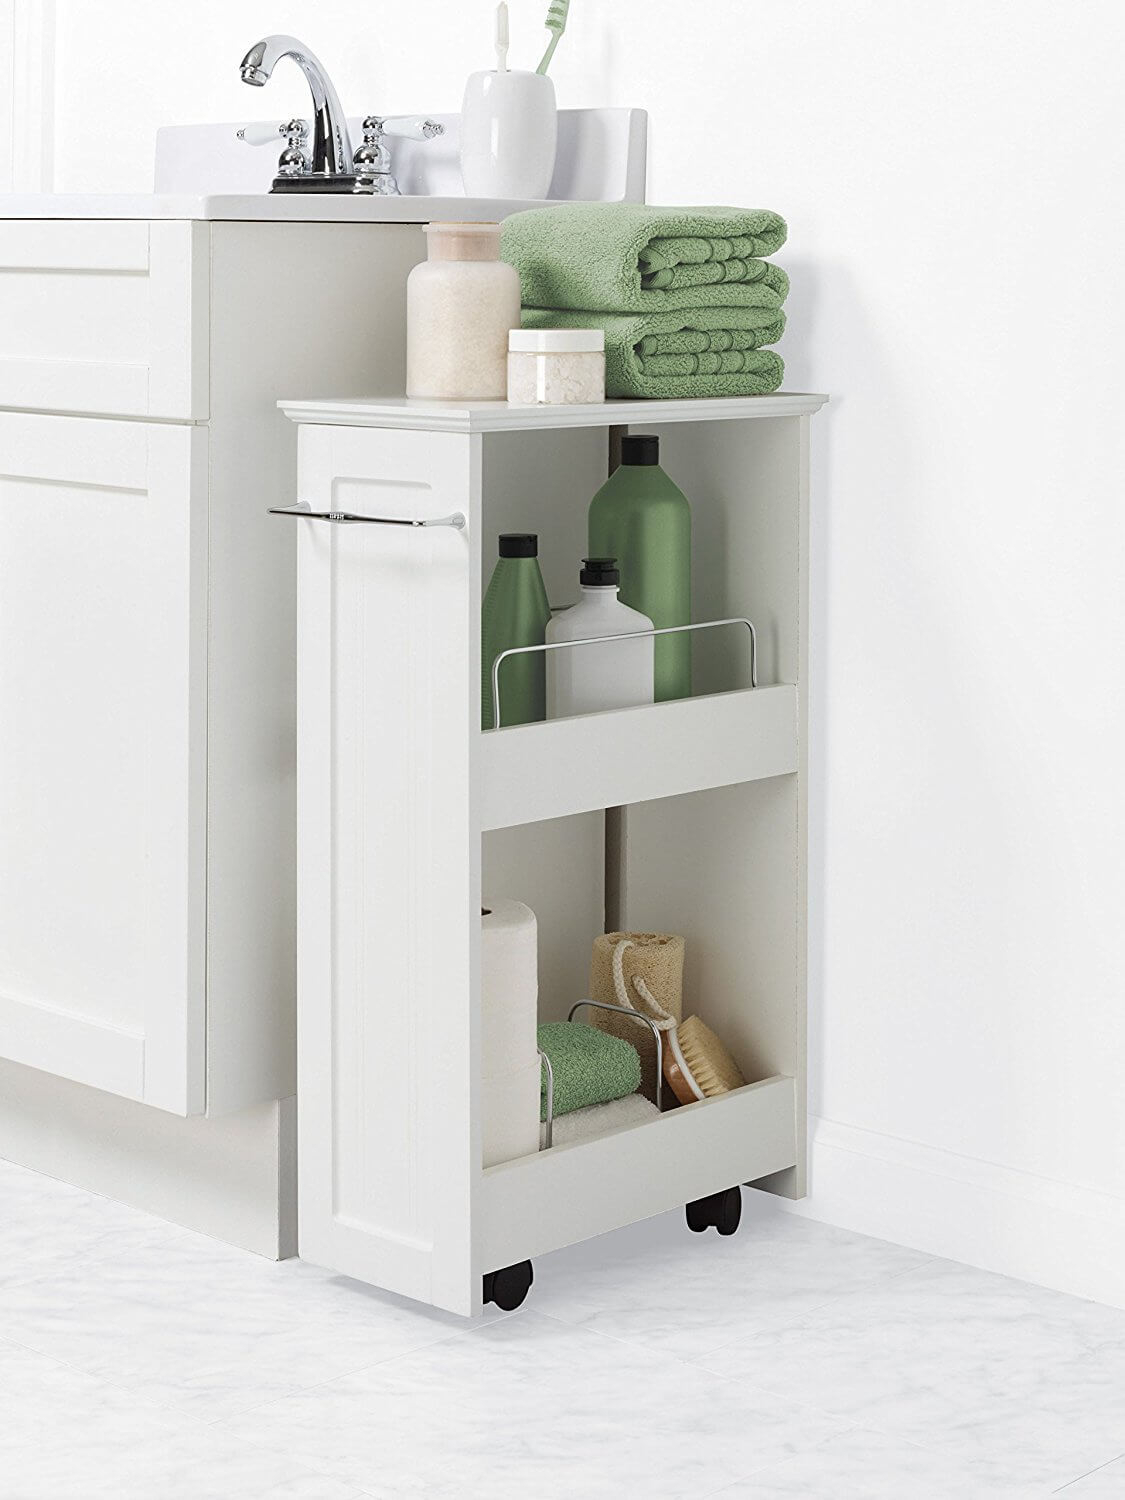 26 Best Bathroom Storage Cabinet Ideas For 2019 intended for size 1125 X 1500